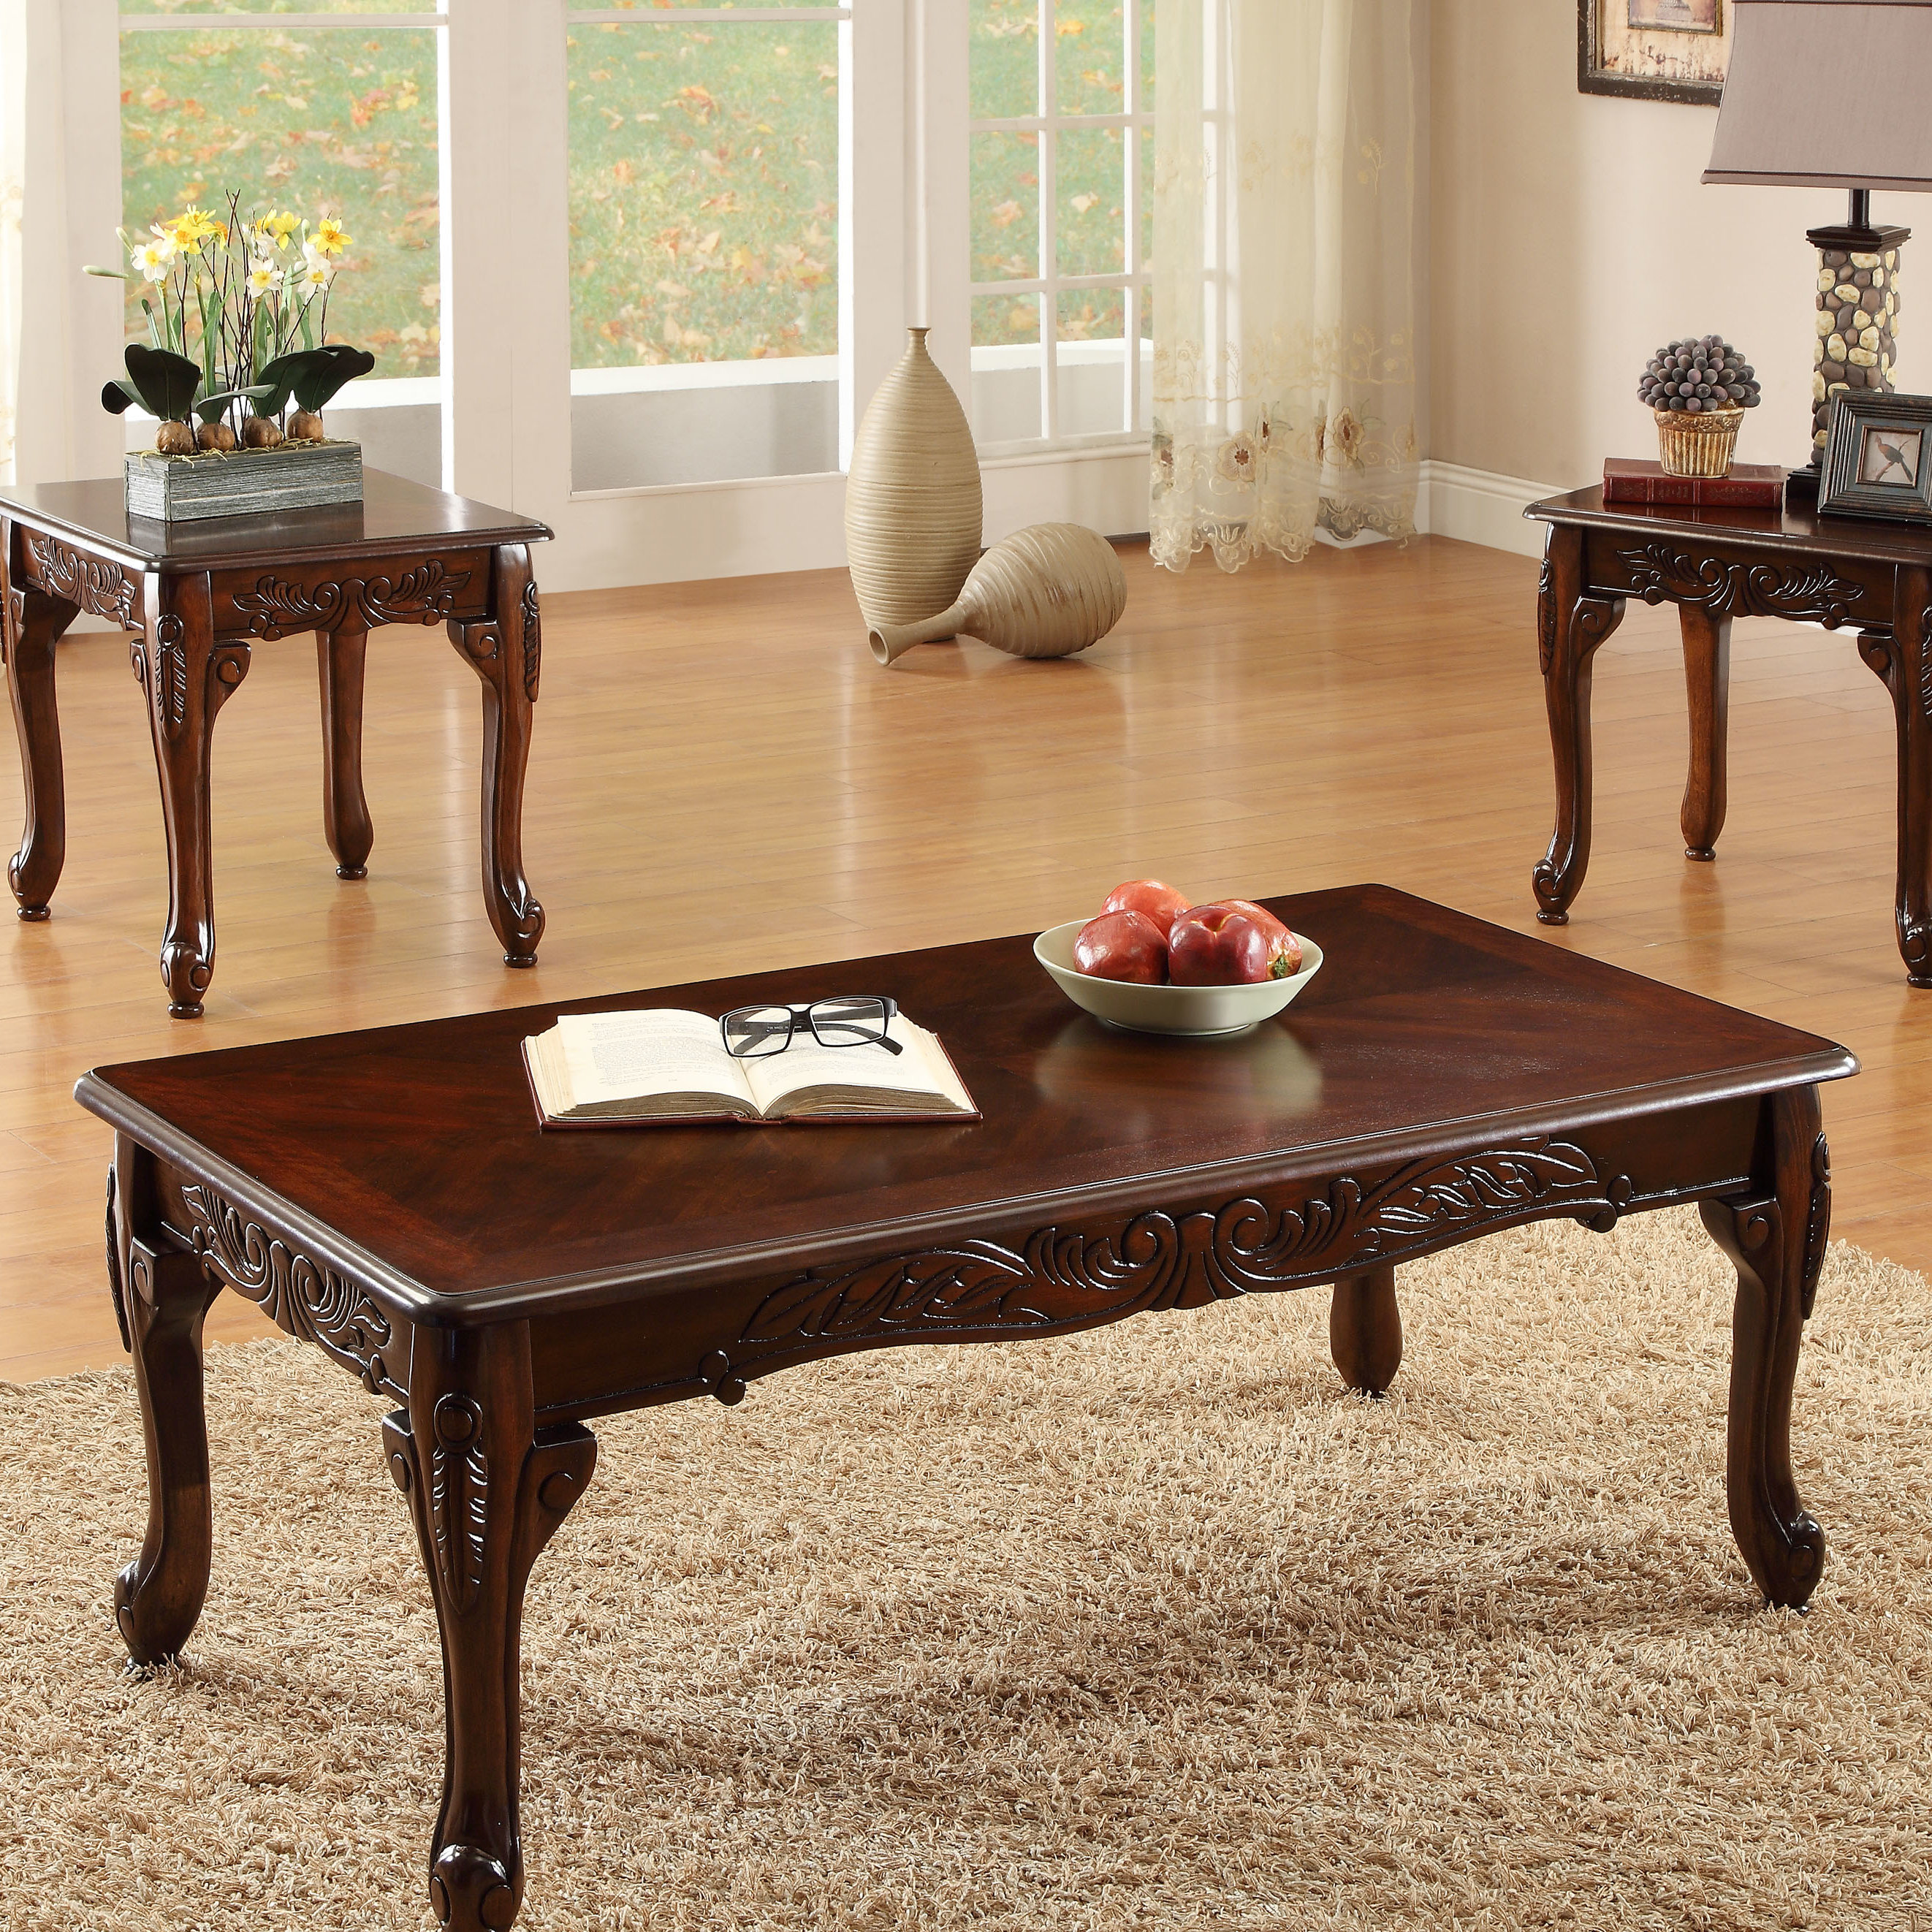 astoria grand harrietta piece coffee table set reviews end tables with pet built kmart coupons for patio furniture accent shelf ethan allen drawer small tan leather sofa colour